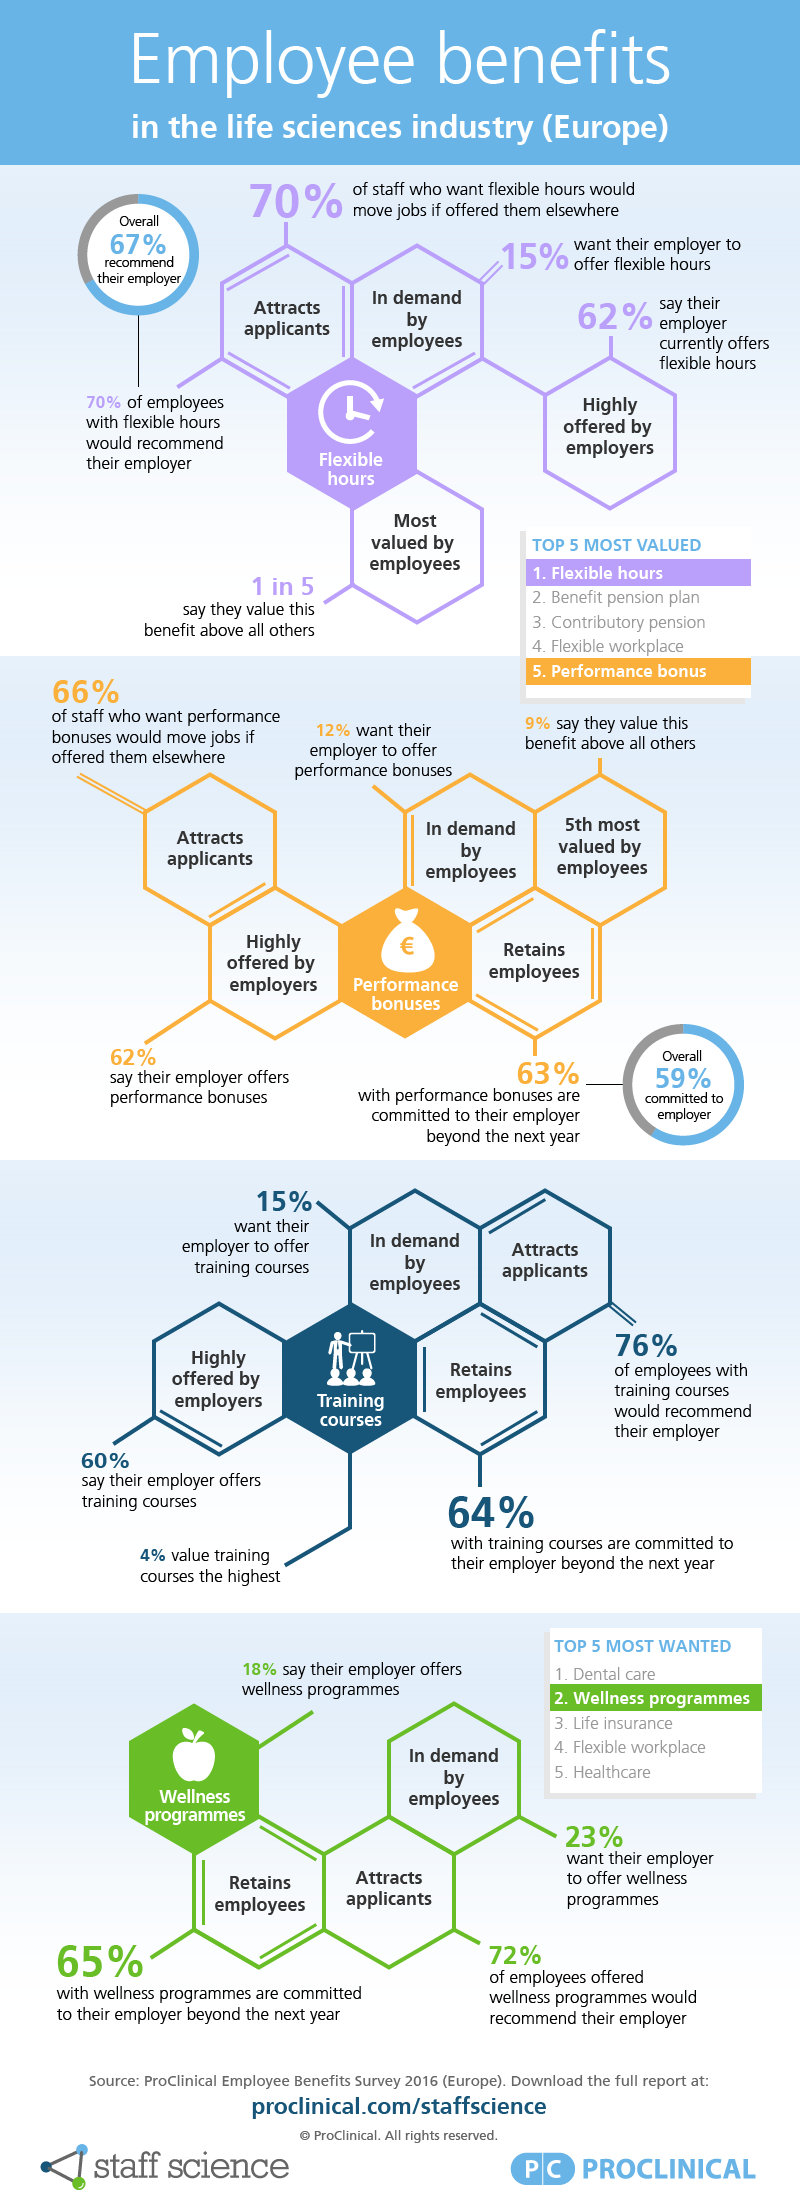 employee-benefits-infographic-europe-lifesciences.png